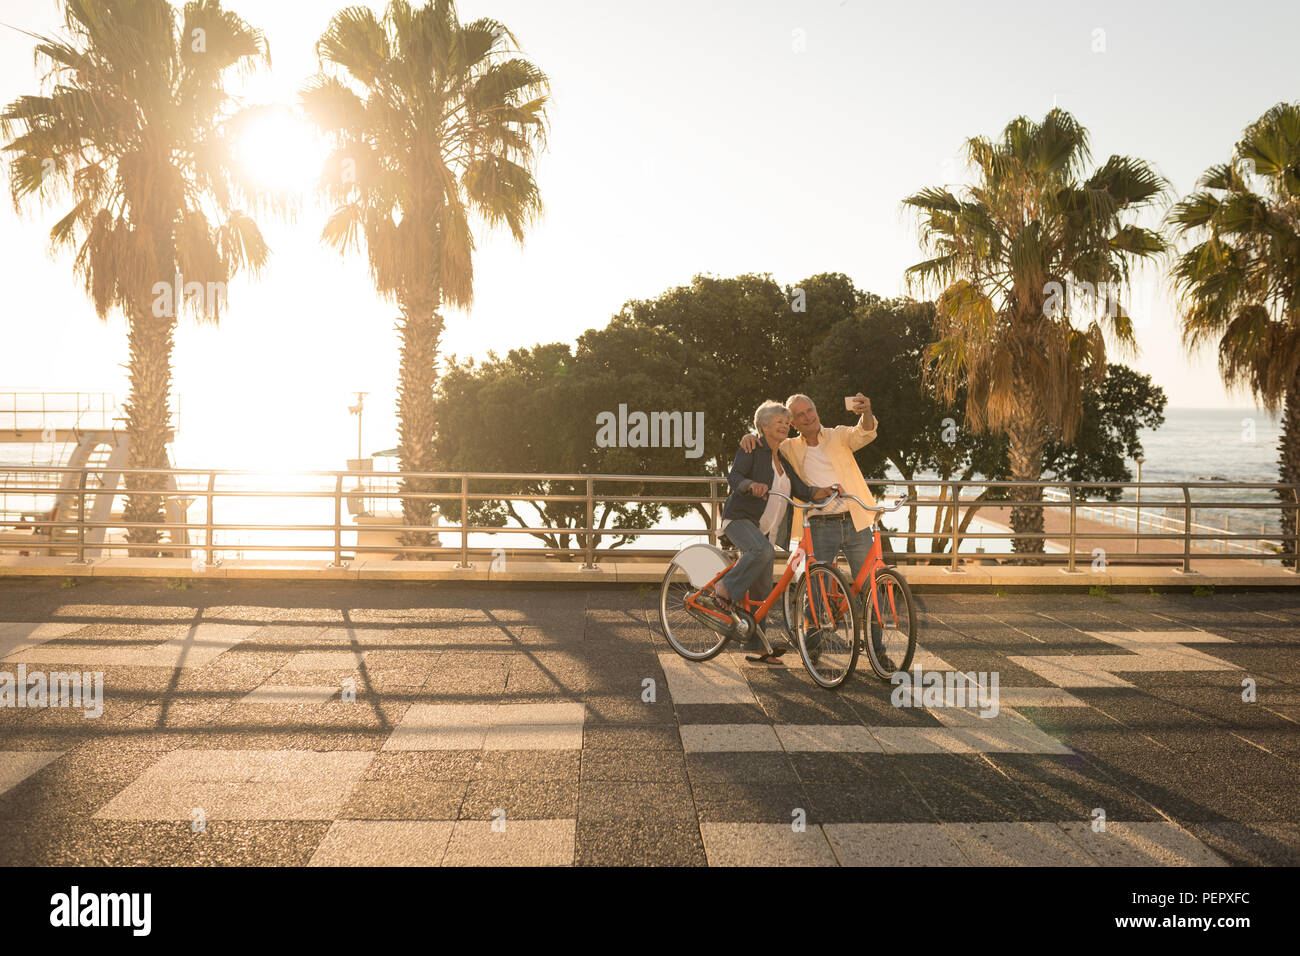 Senior couple taking selfie at promenade - Stock Image